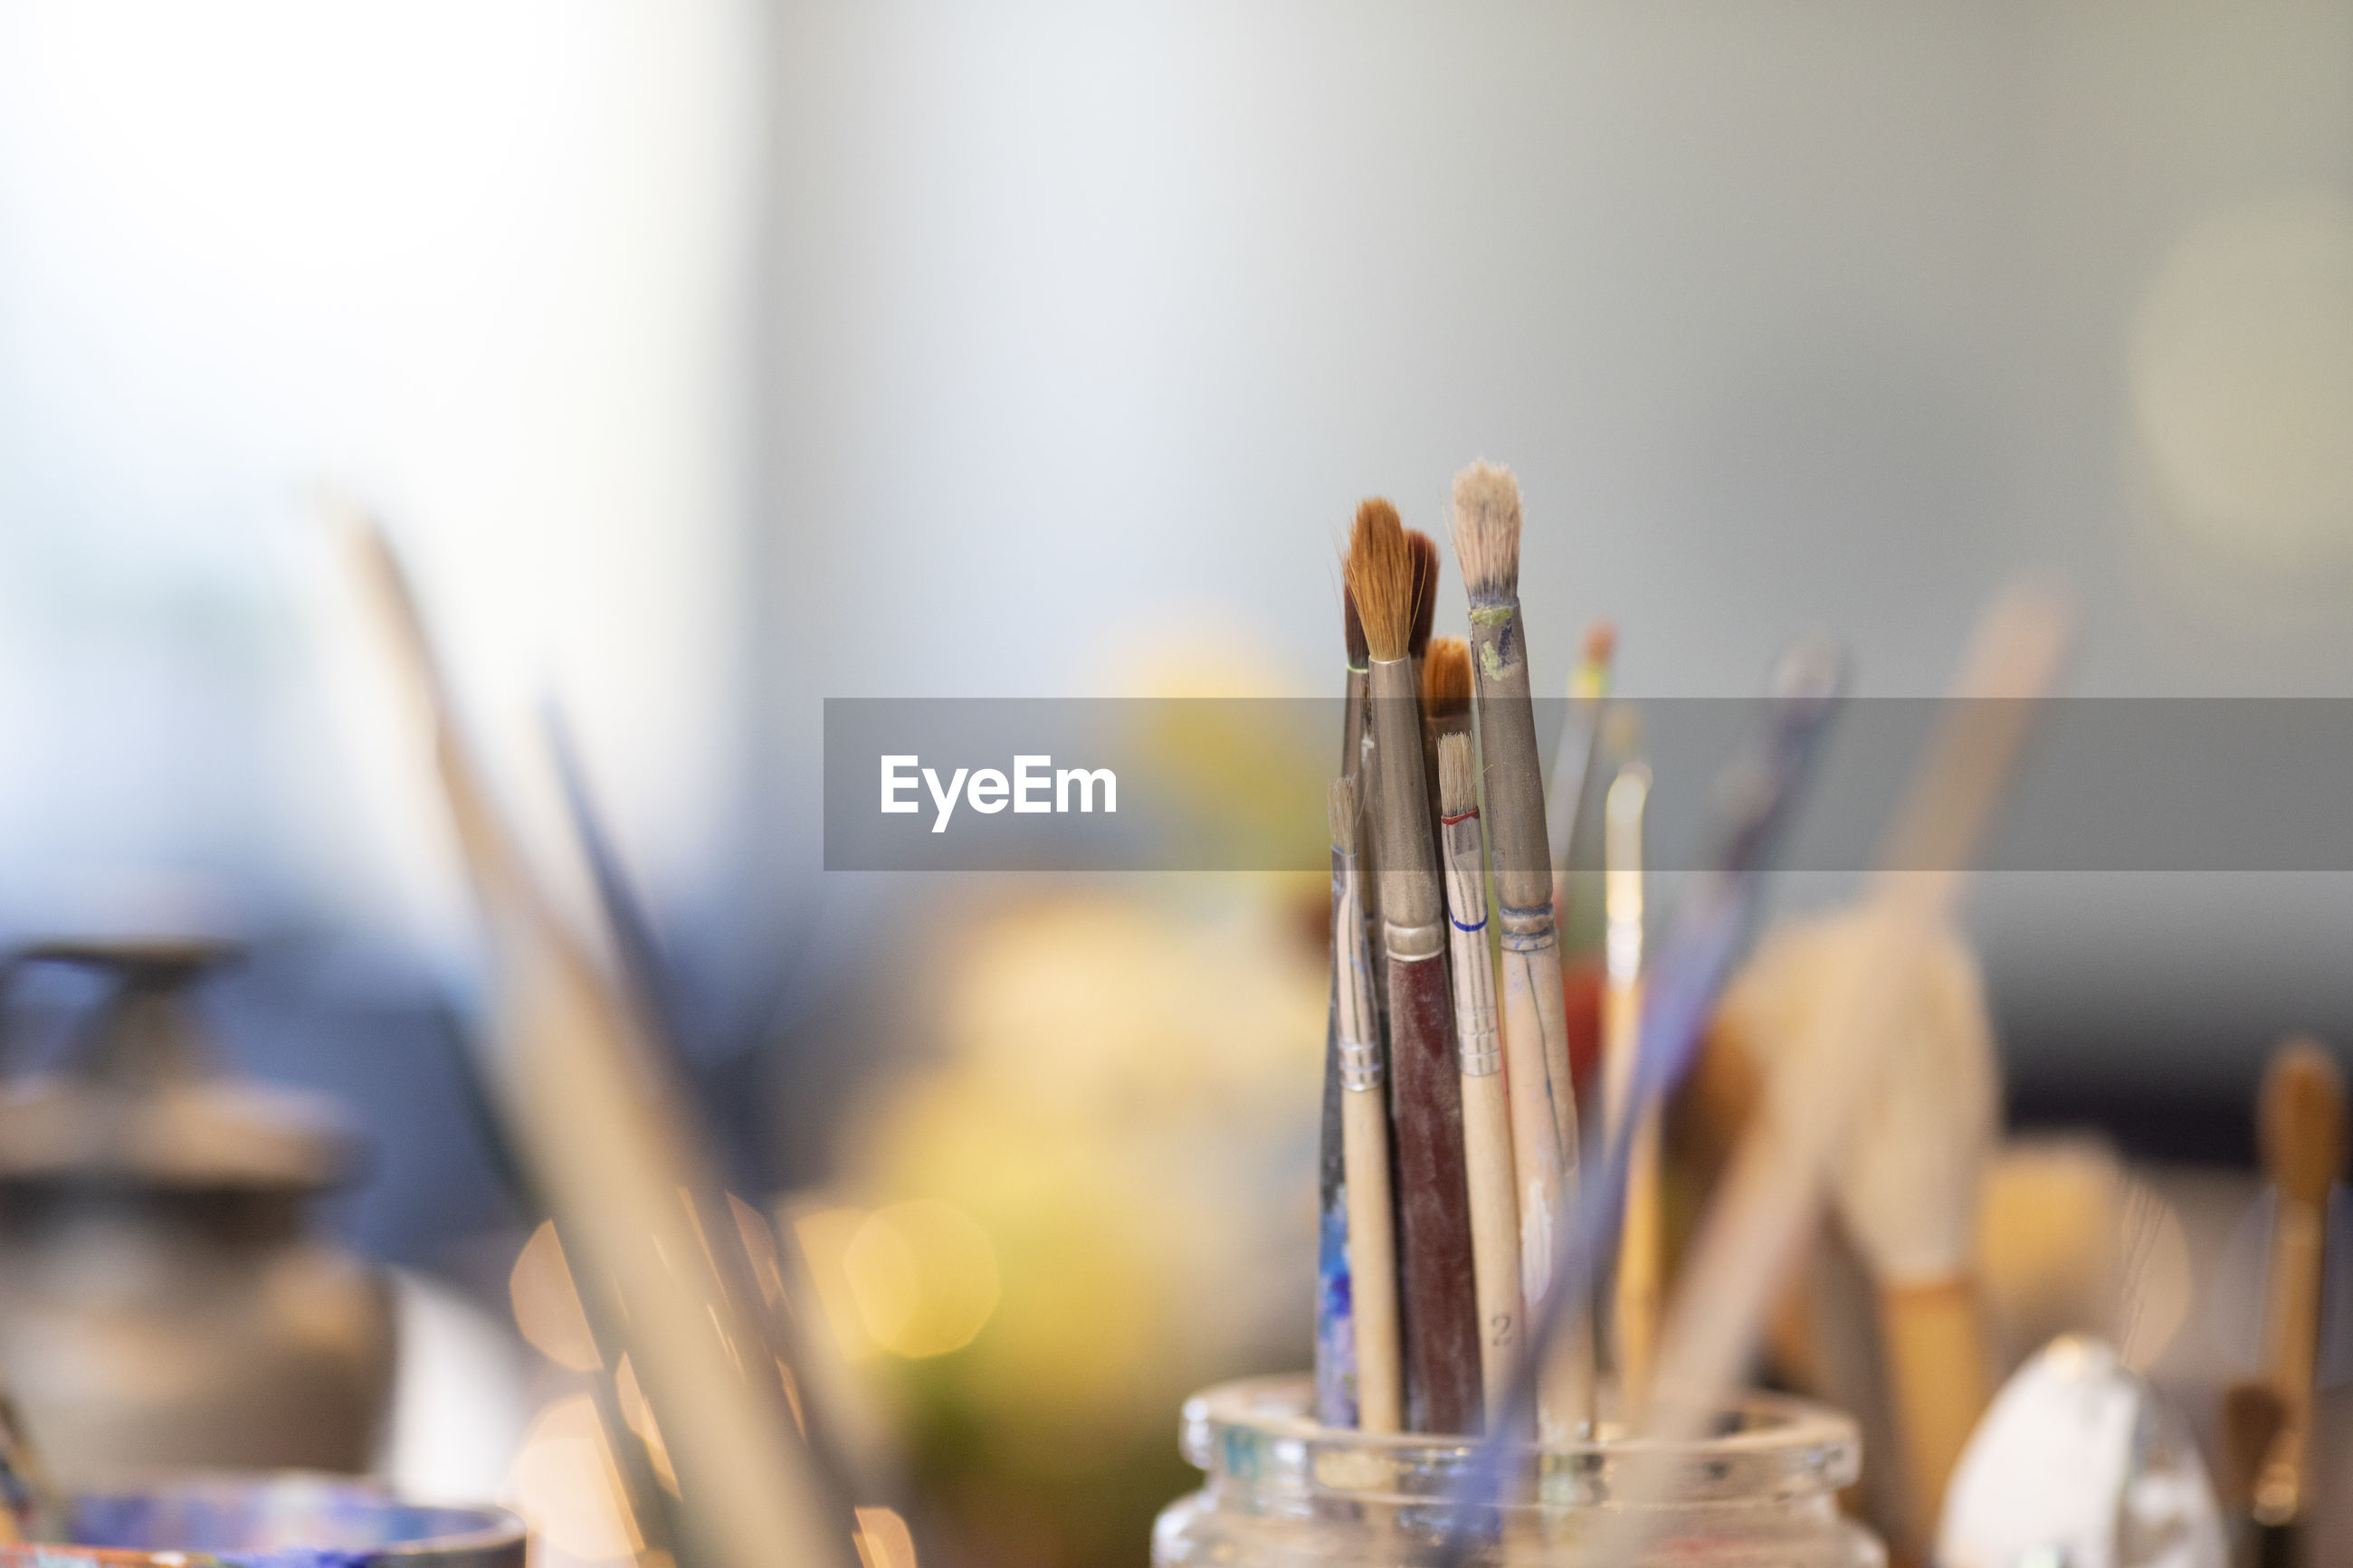 CLOSE-UP OF PAINTBRUSHES ON TABLE AGAINST BLURRED BACKGROUND